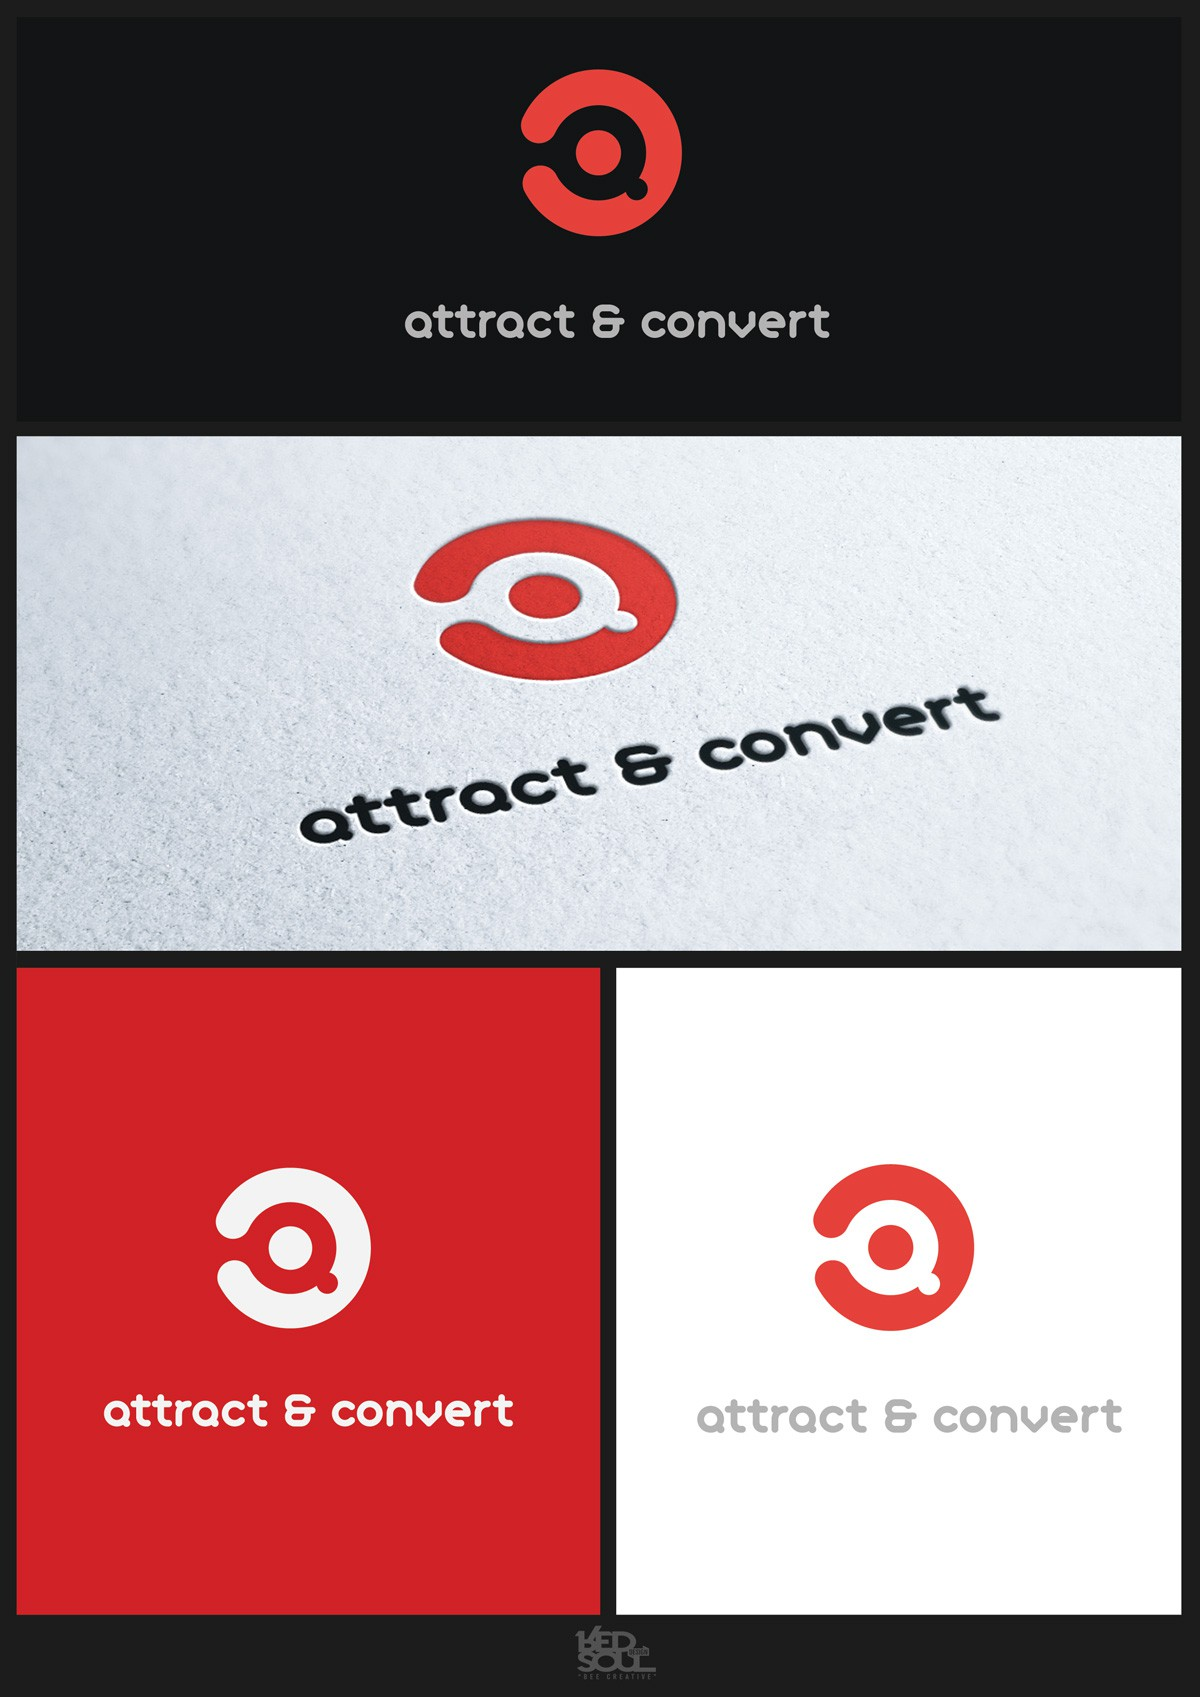 Modern and Minimalistic Logo Design needed for a Online Marketing Agency 'Attract & Convert'